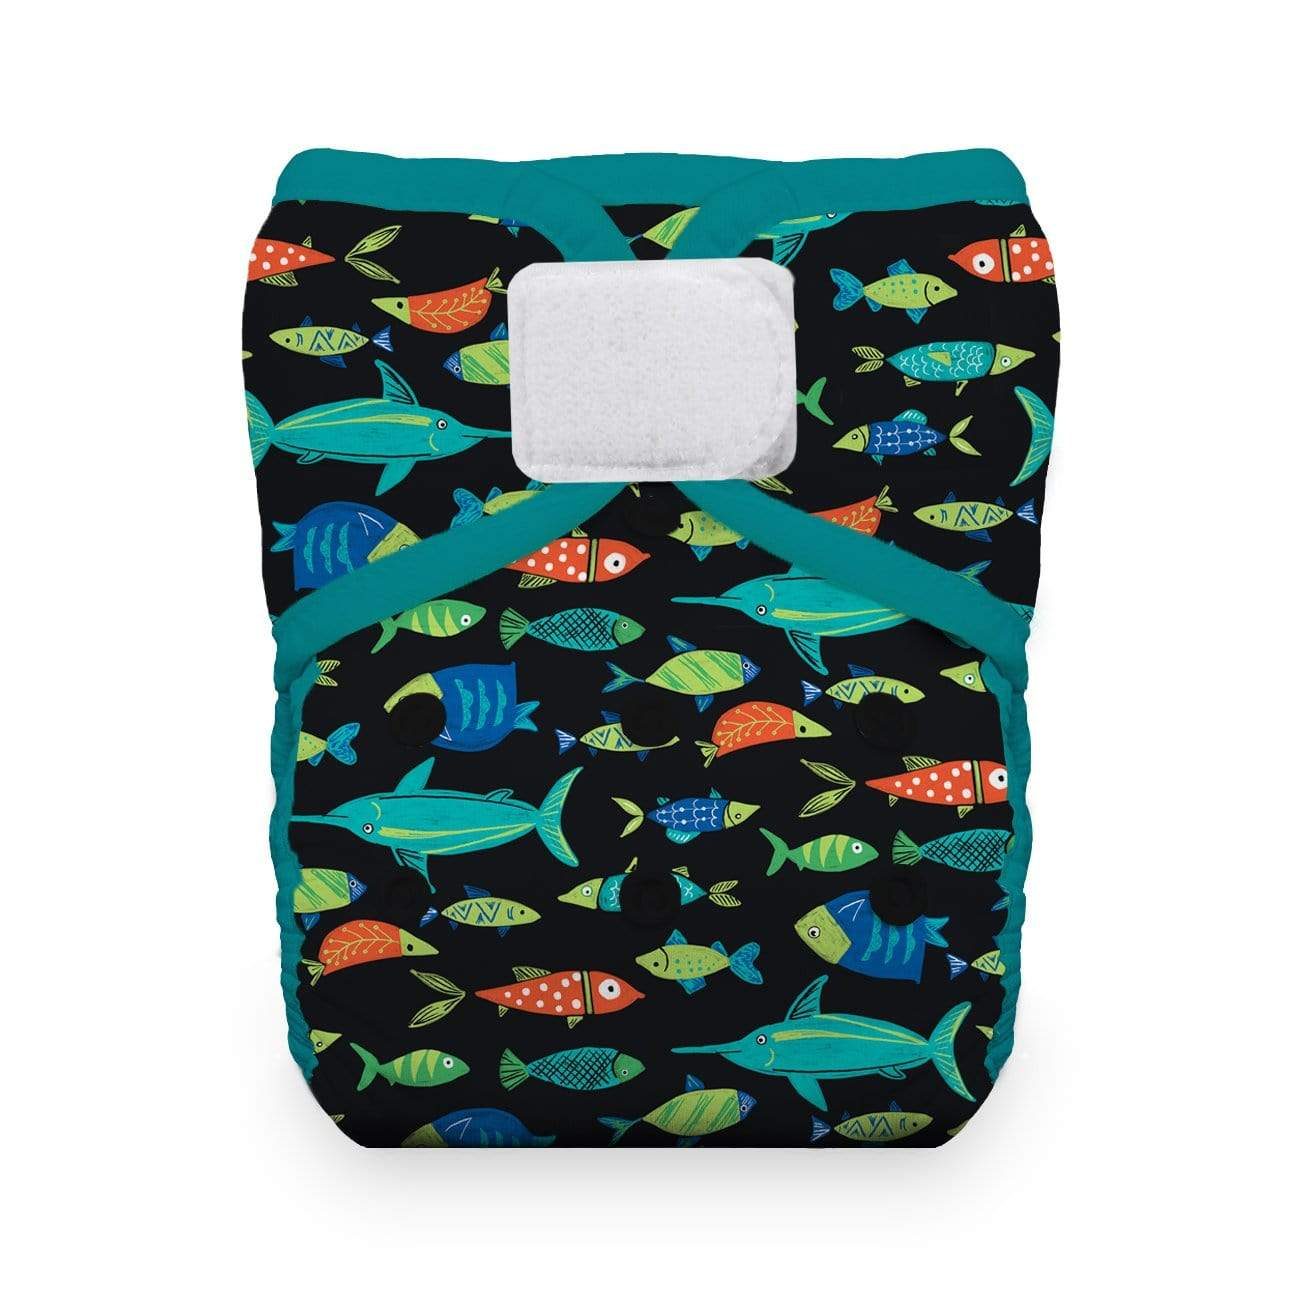 Thirsties One Size Hook and Loop Pocket Diaper - Fish Tales